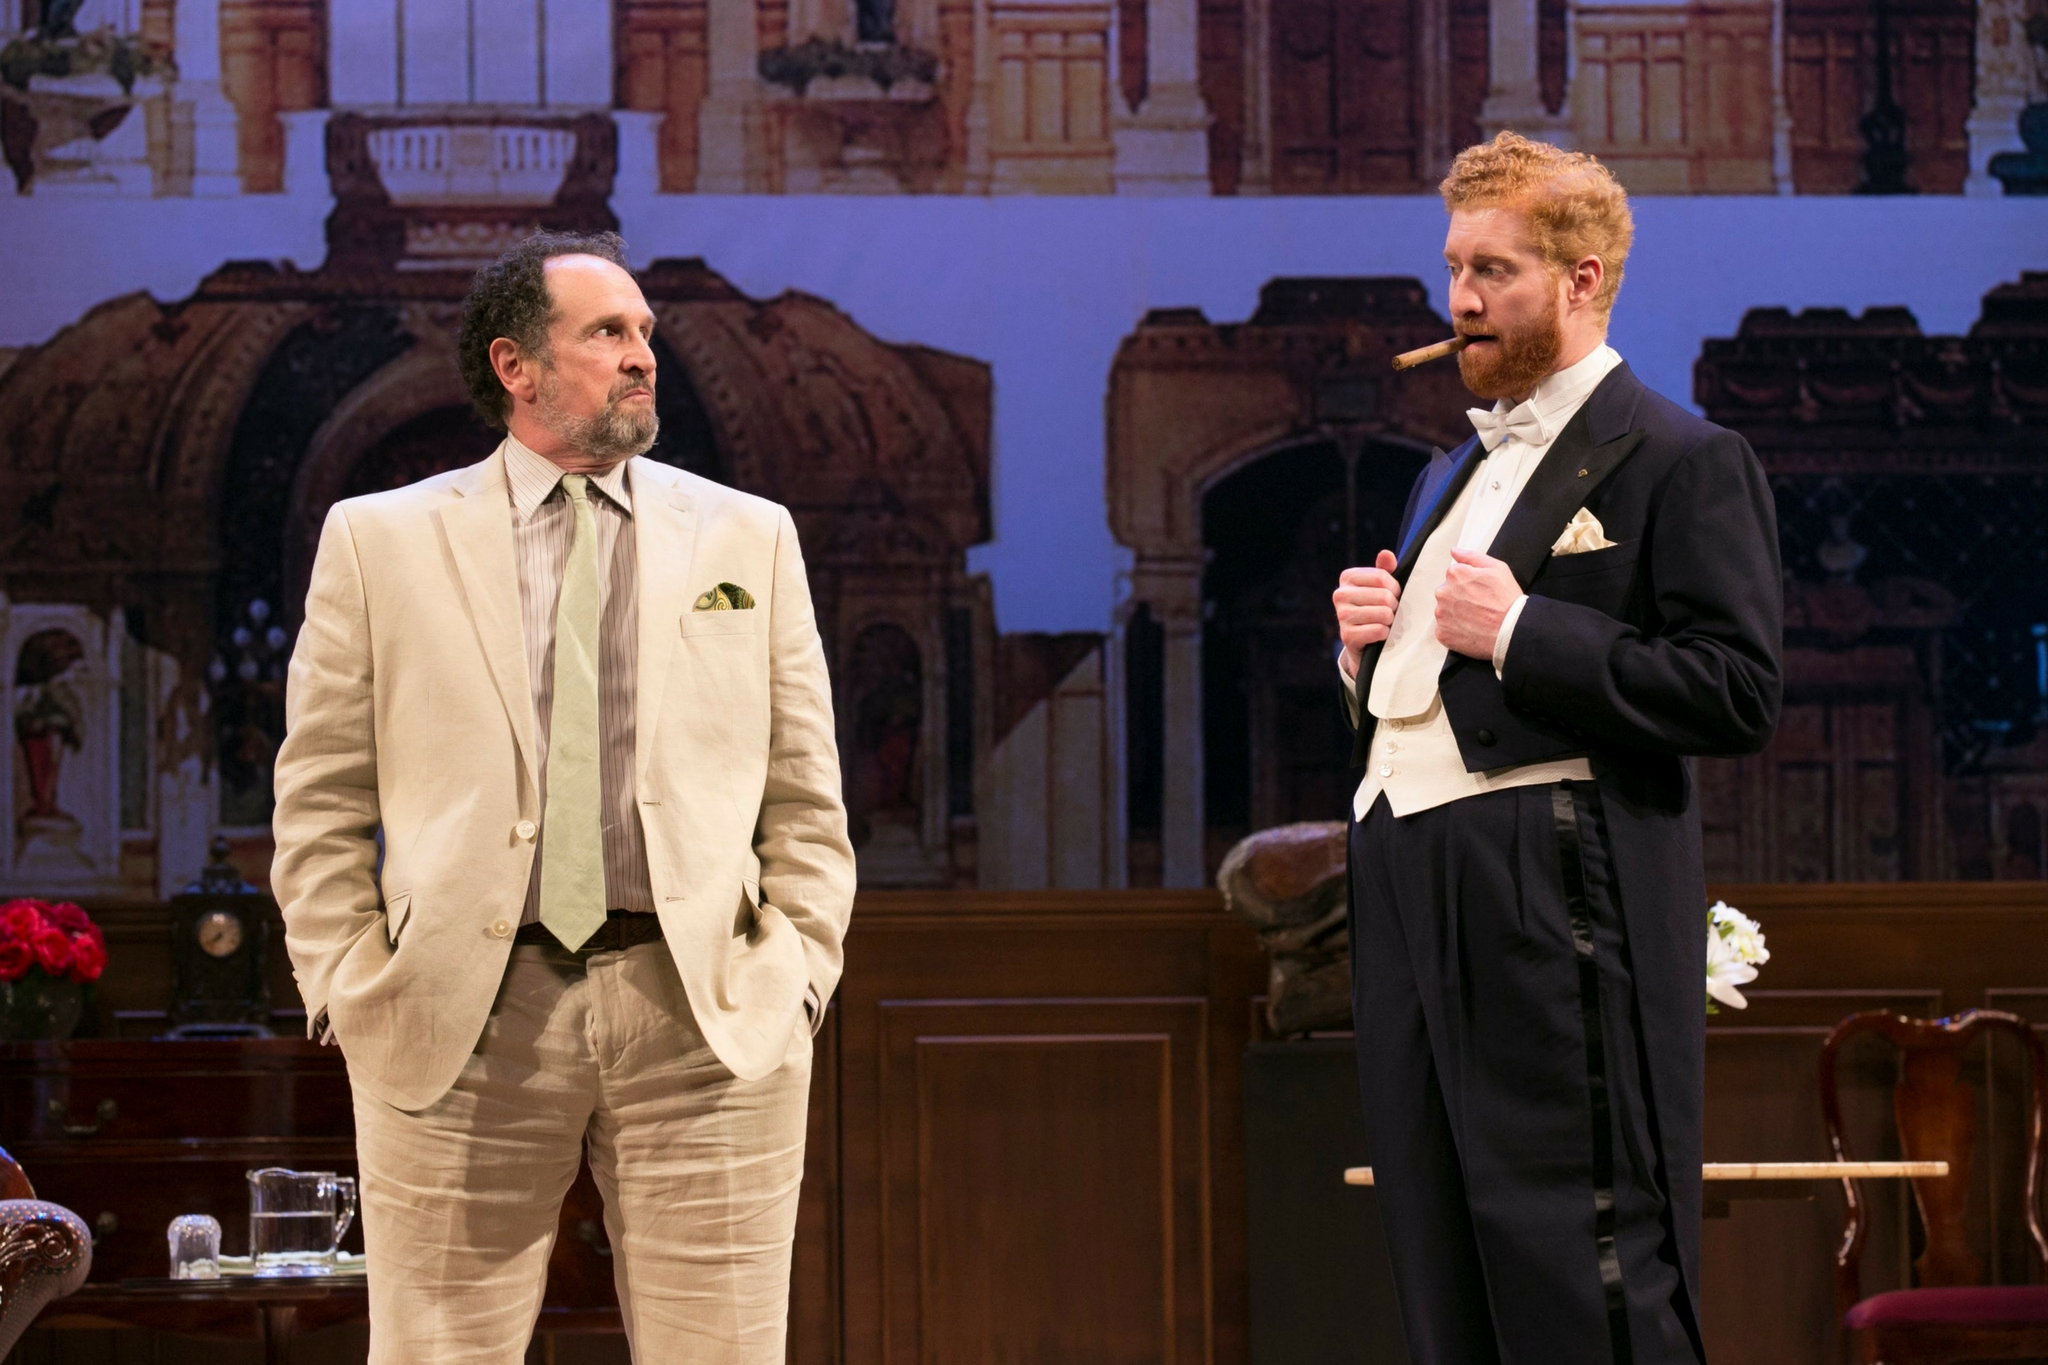 Jeremiah Kissel (Jeffrey Bernstein) and Ed Hoopman (Tobias Vivian Pfeiffer) in Old Money, 2018-Photo by Evgenia Eliseeva